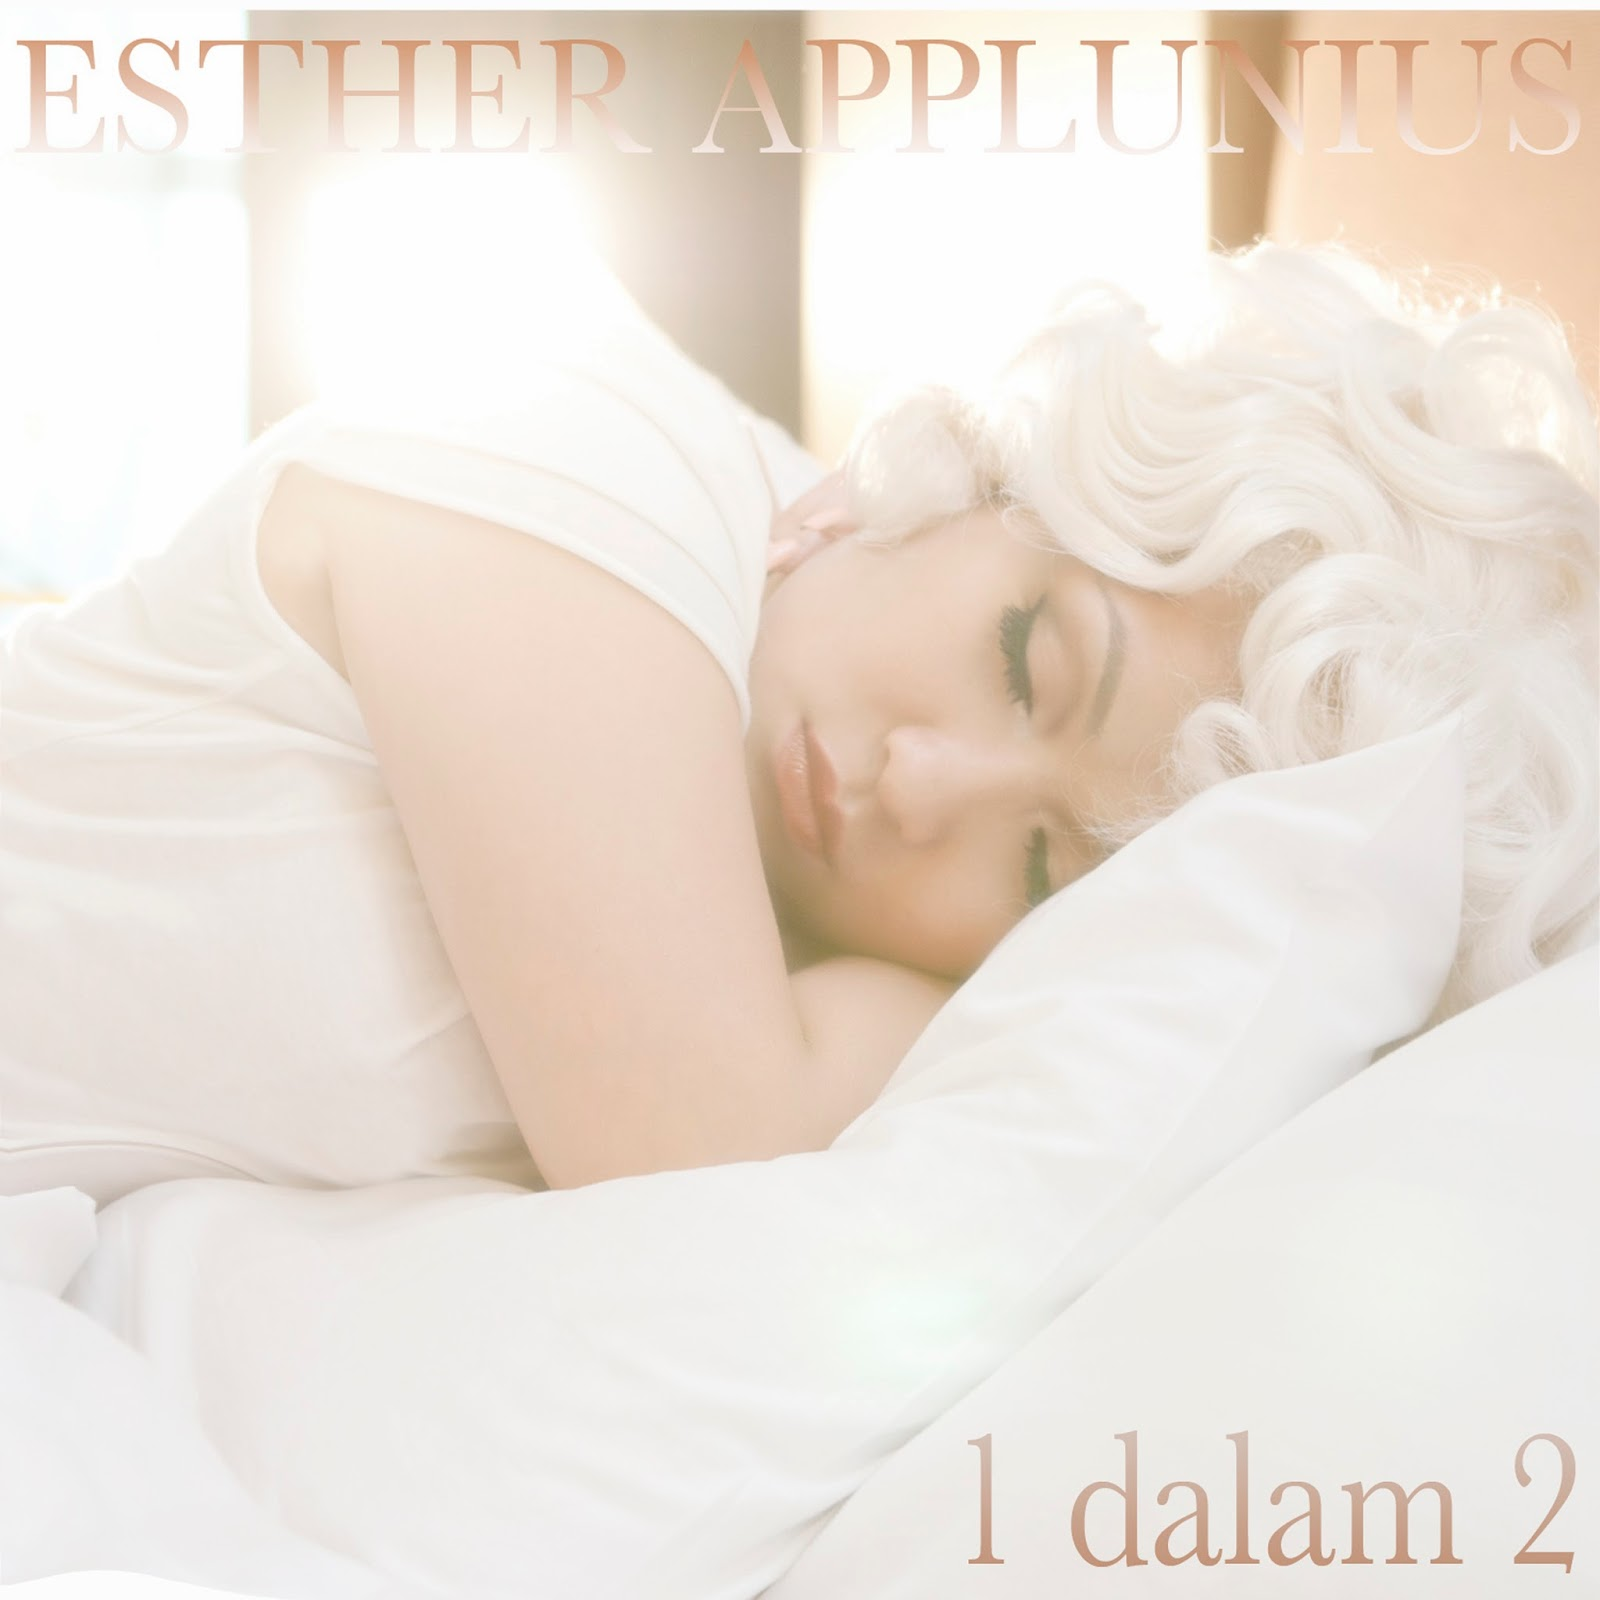 Esther Applunius - 1 dalam 2